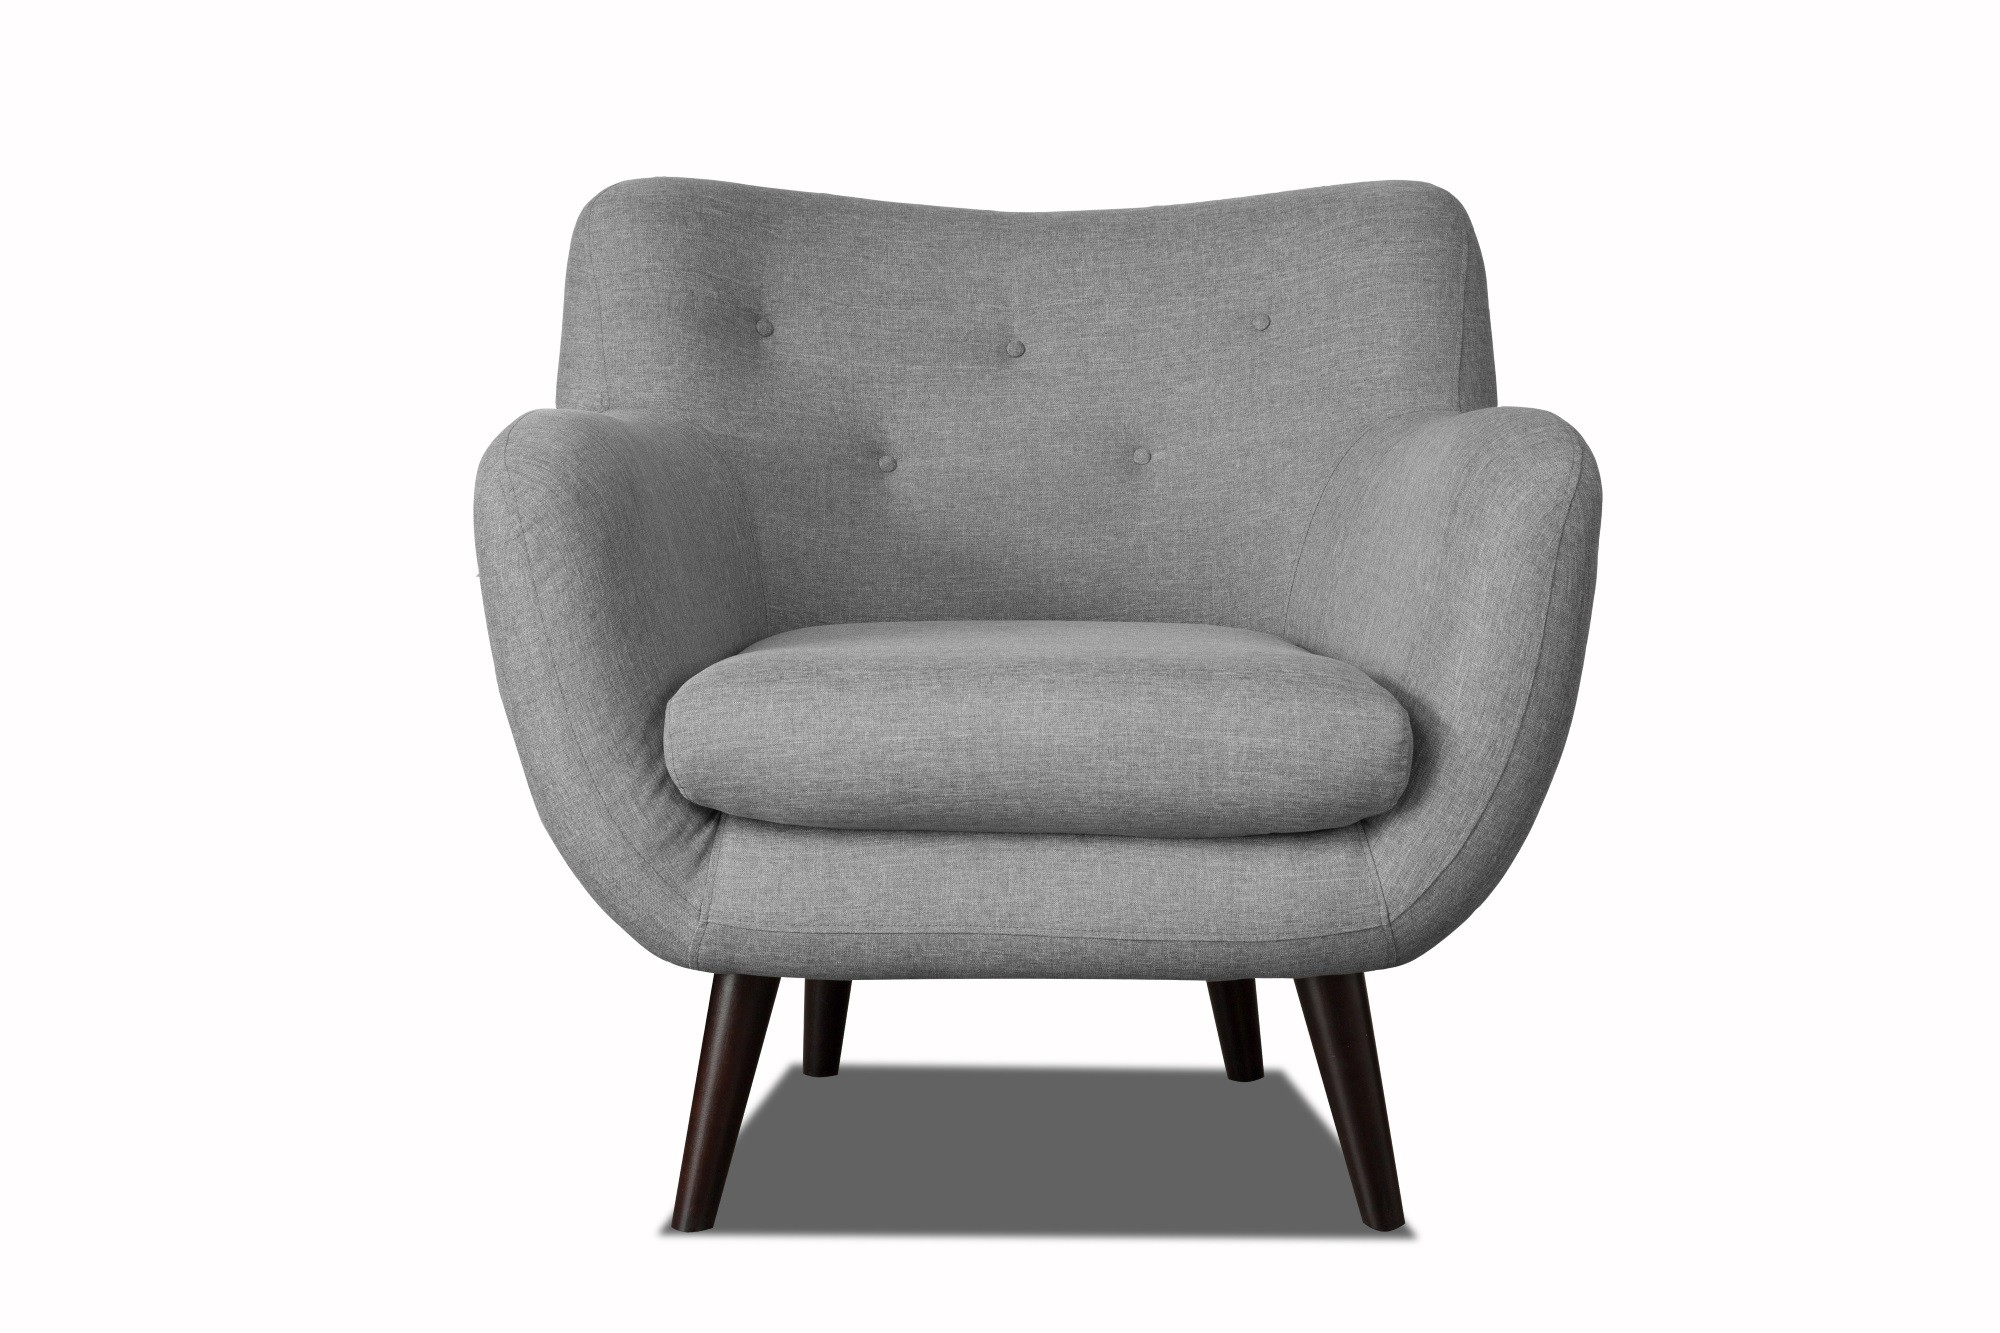 Attrayant Fauteuil Chambre Pas Cher